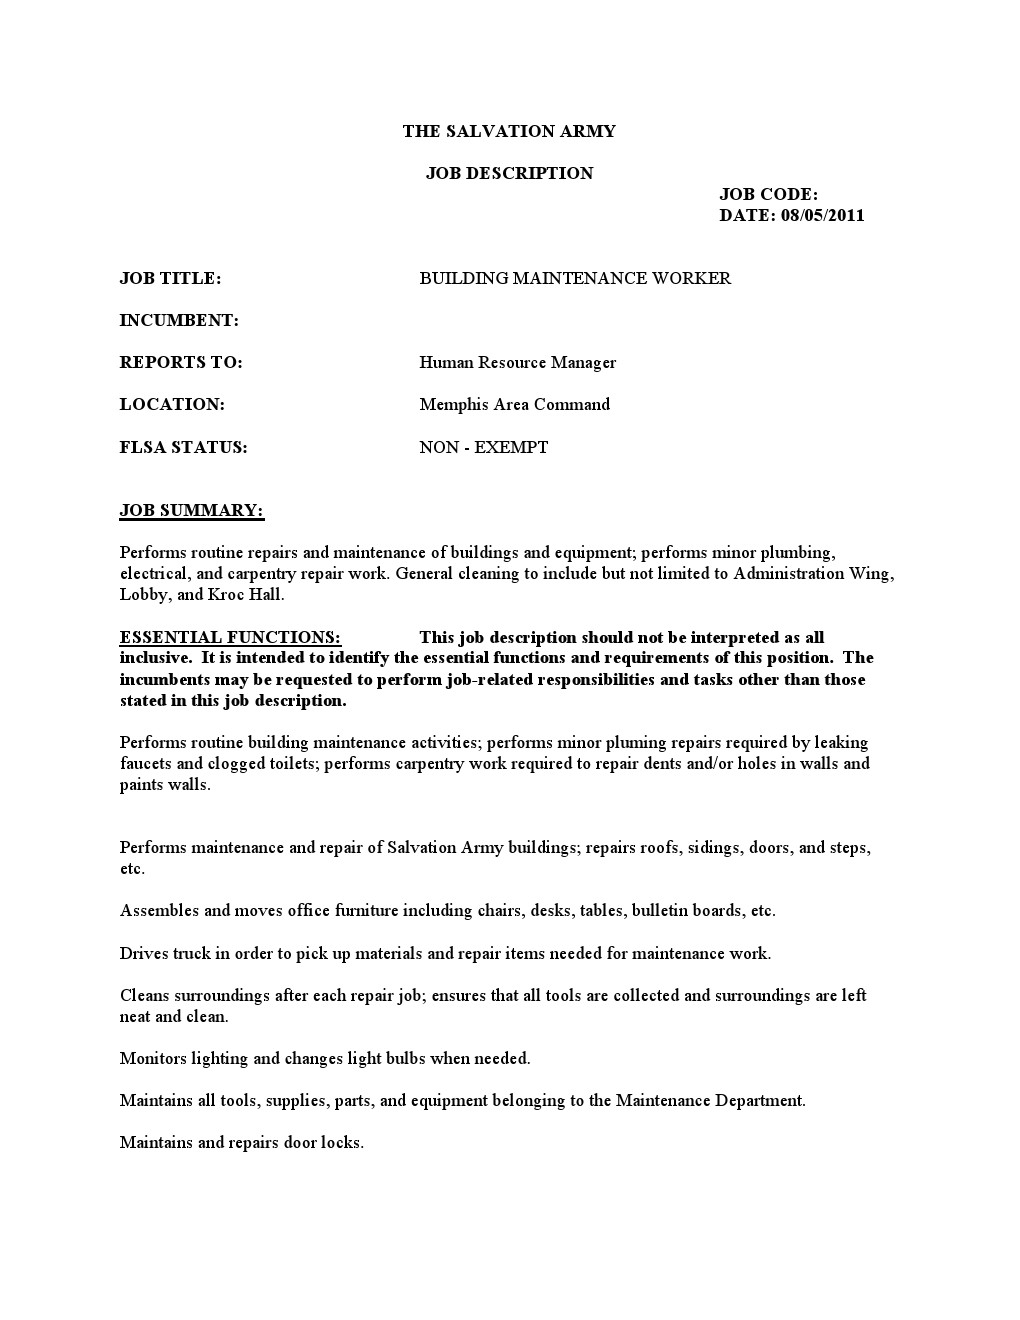 resume for maintenance worker resume occupationalexamples building maintenance worker resume resume for maintenance worker 3105